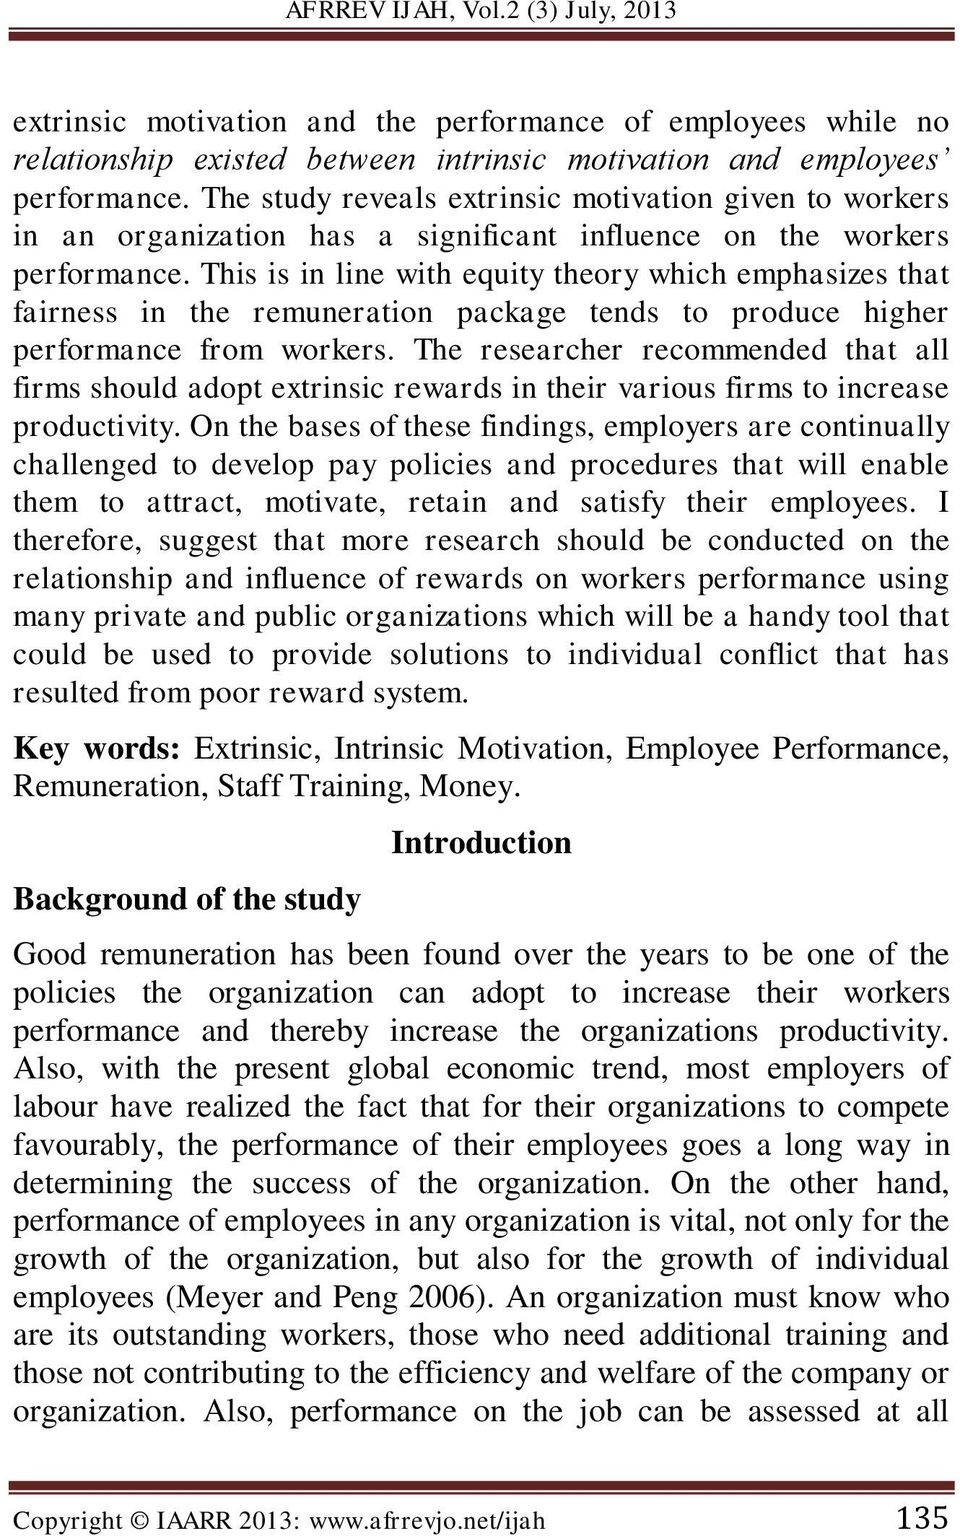 This is in line with equity theory which emphasizes that fairness in the remuneration package tends to produce higher performance from workers.